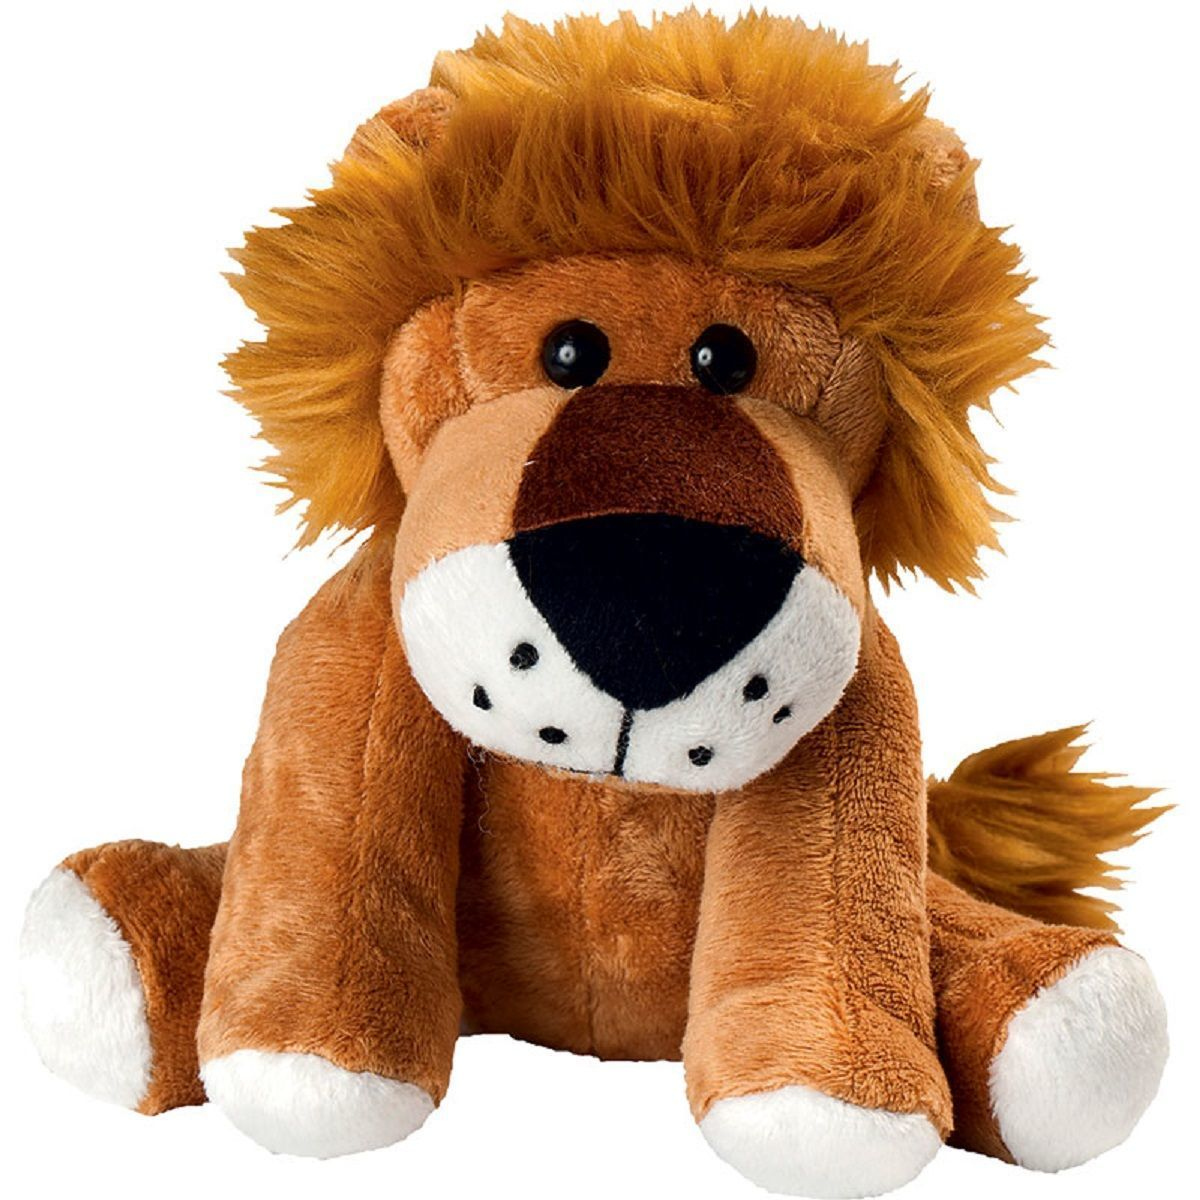 Peluche lion - 60033 - marron